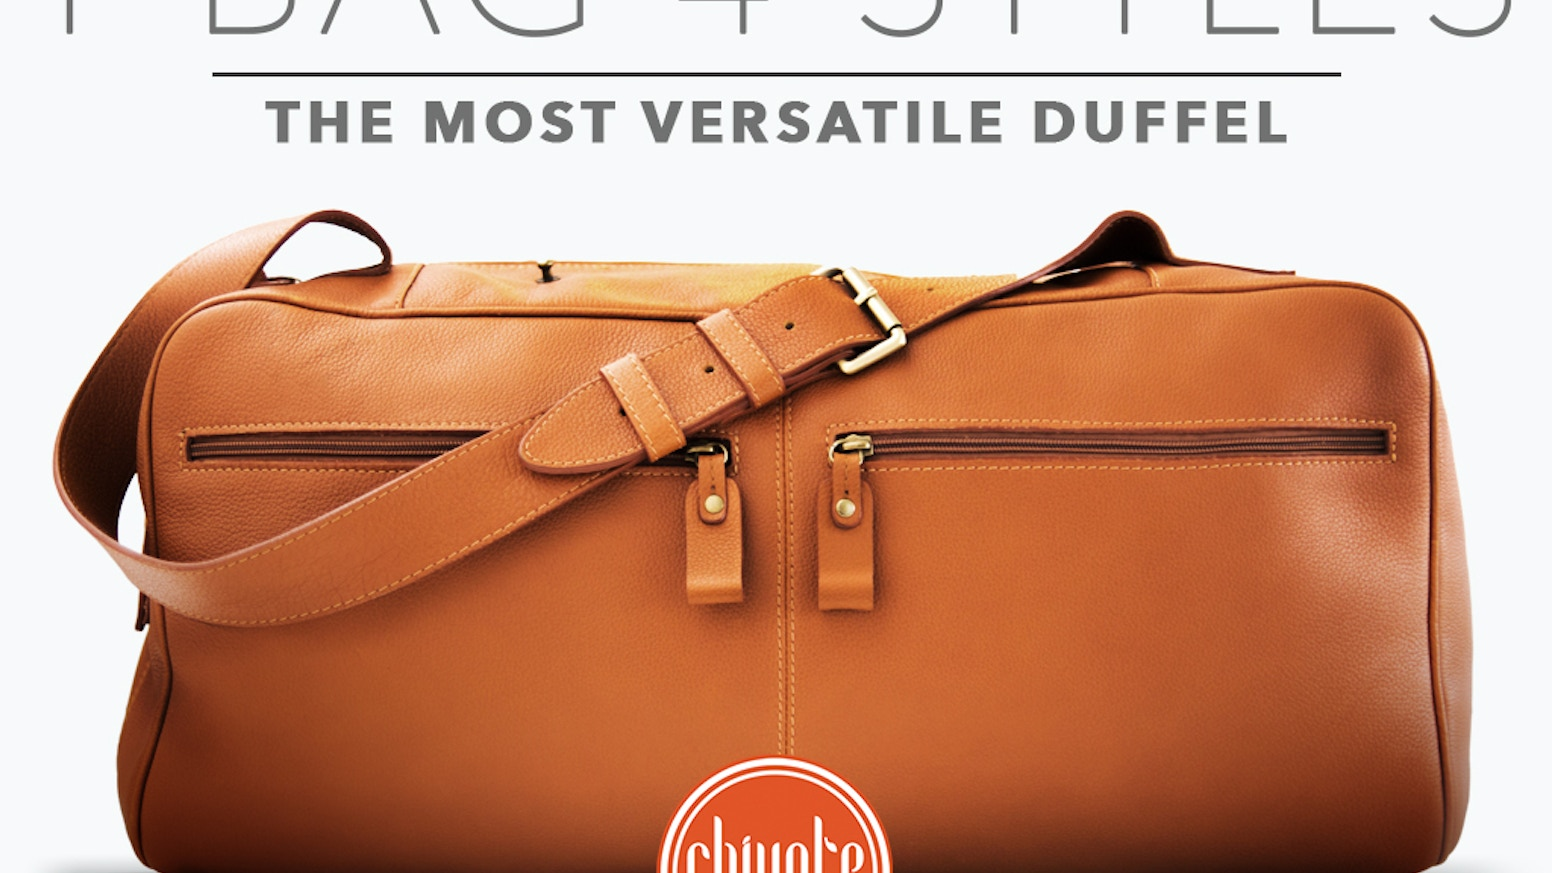 The 4Style Duffel | Good looks, durability and versatility, everything you want in a leather travel bag!